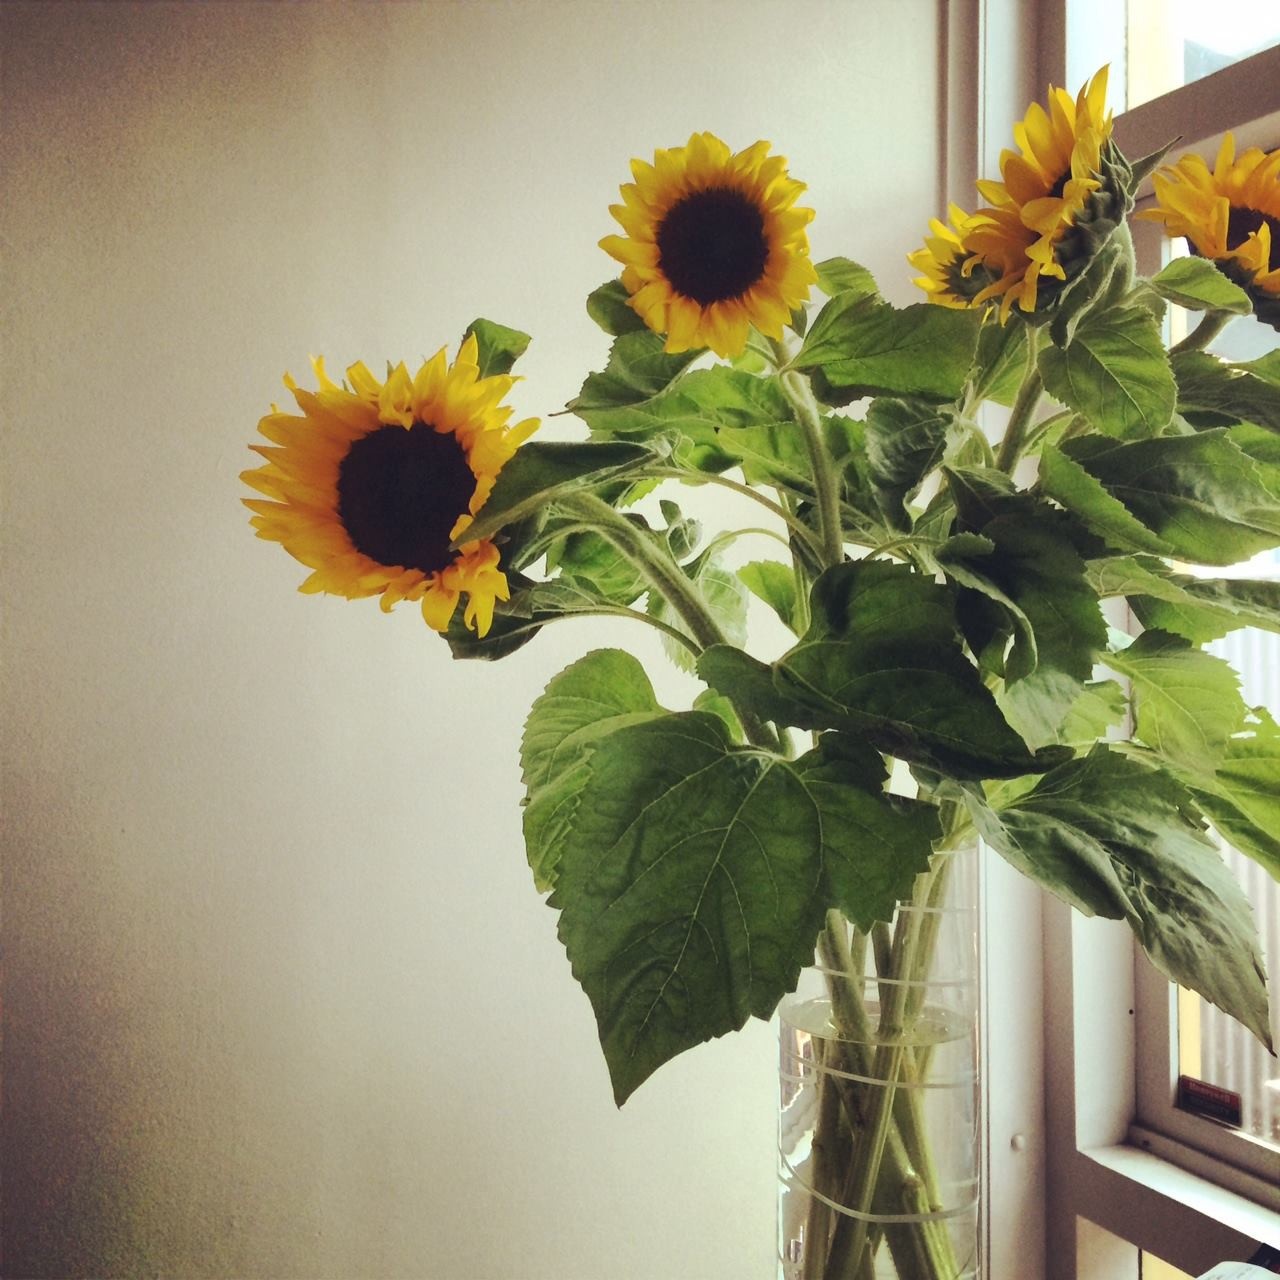 A vase of sunflowers in the afternoon light